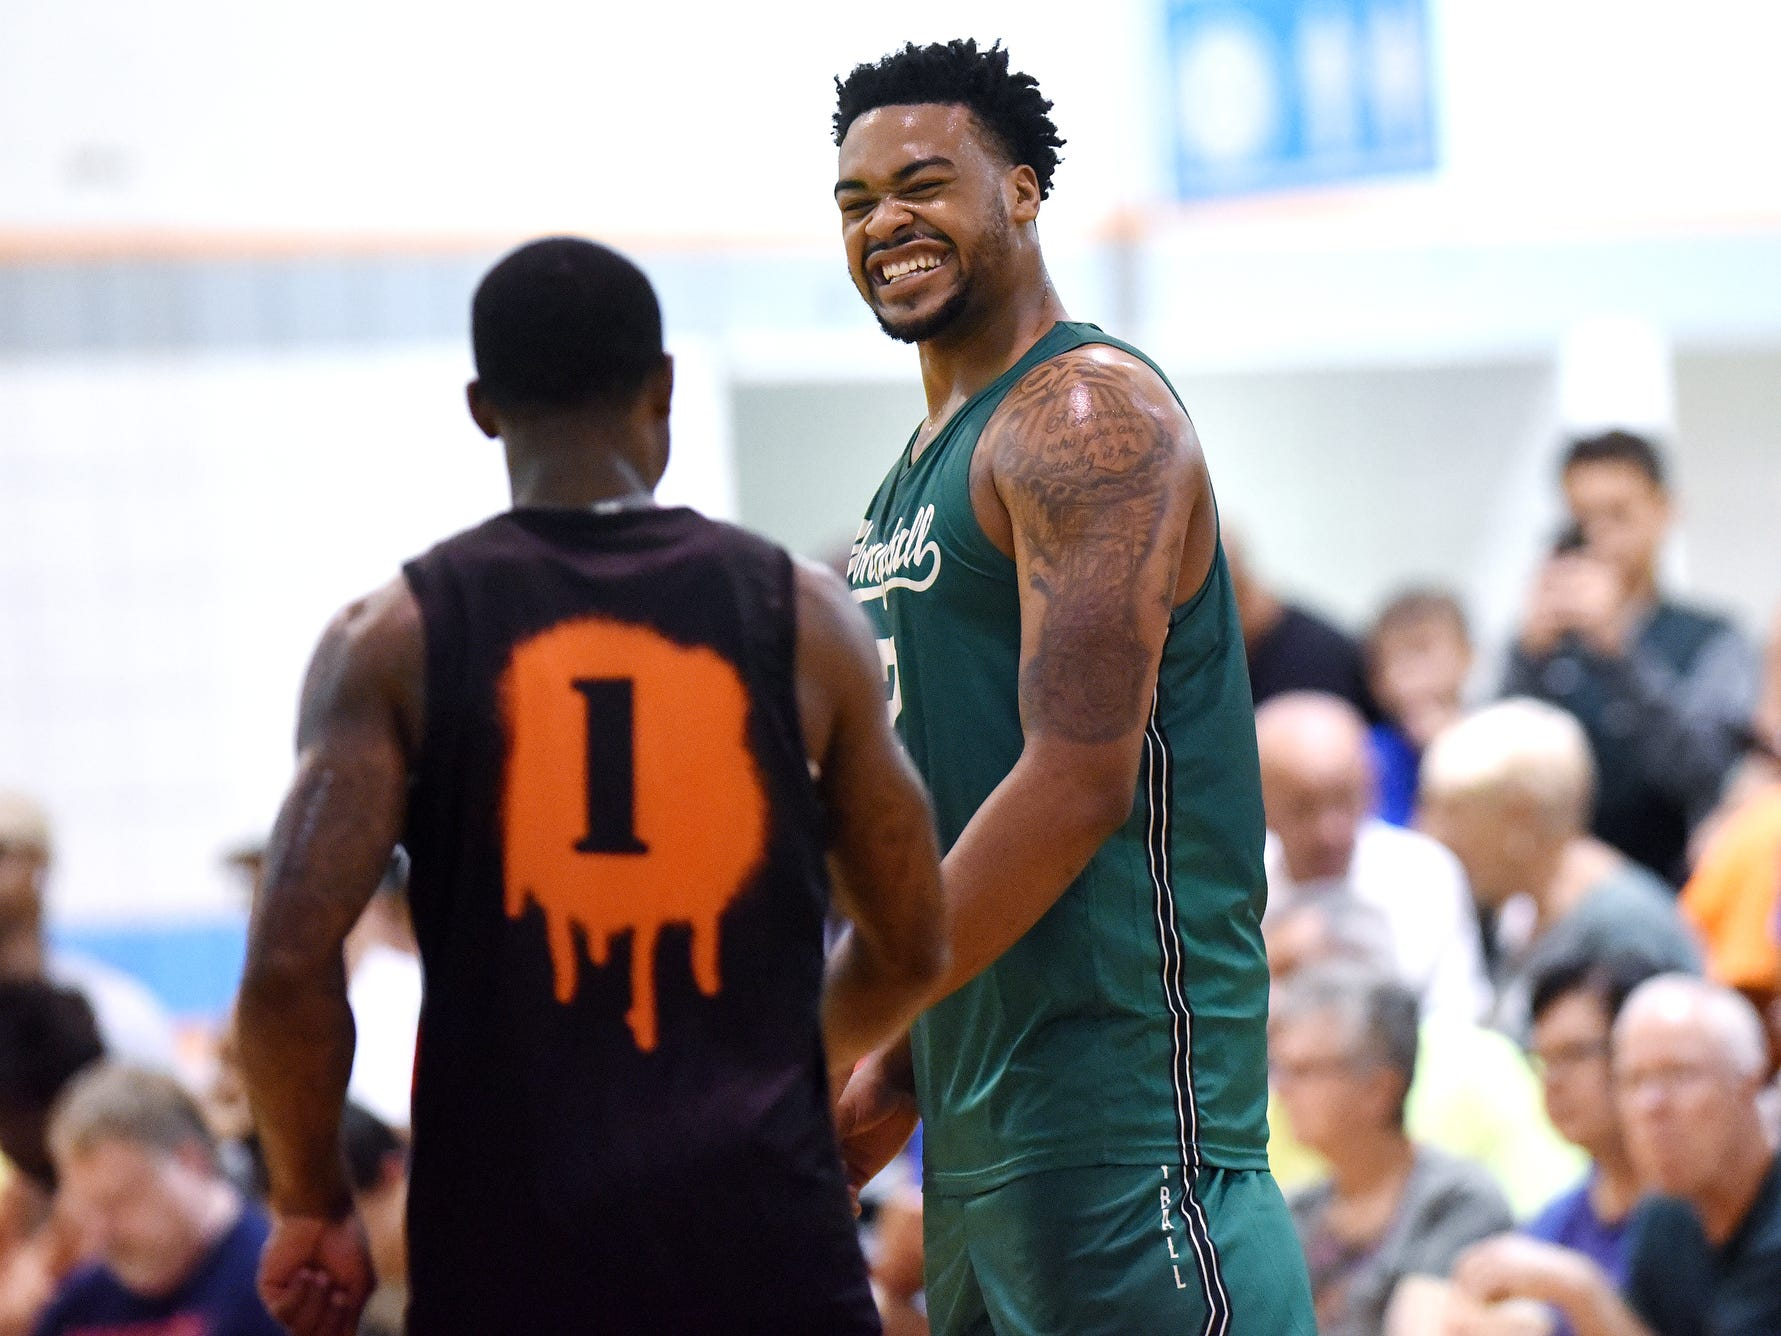 Michigan State center and Team Vintage's Nick Ward, right, jokes with Team Splatter's Kay Felder on Thursday, June 28, 2018, during a Moneyball Pro-Am summer basketball league game at Aim High in Dimondale.